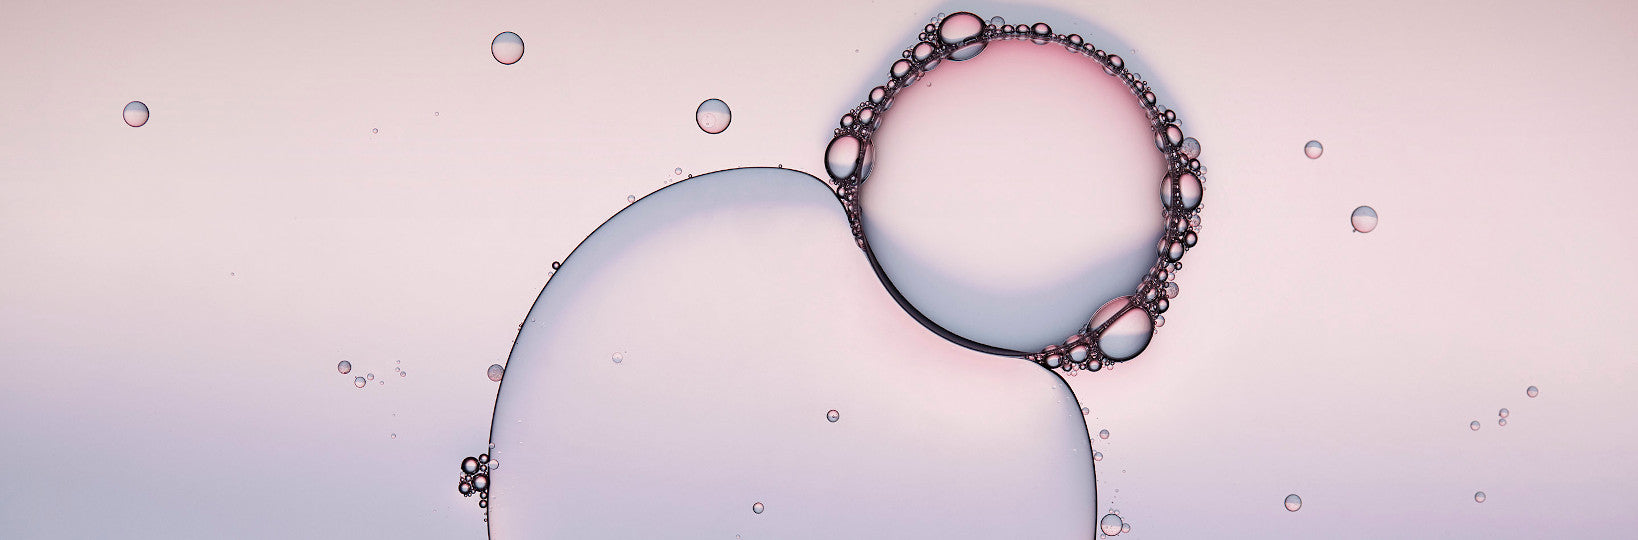 Big and small bubbles on light purple background